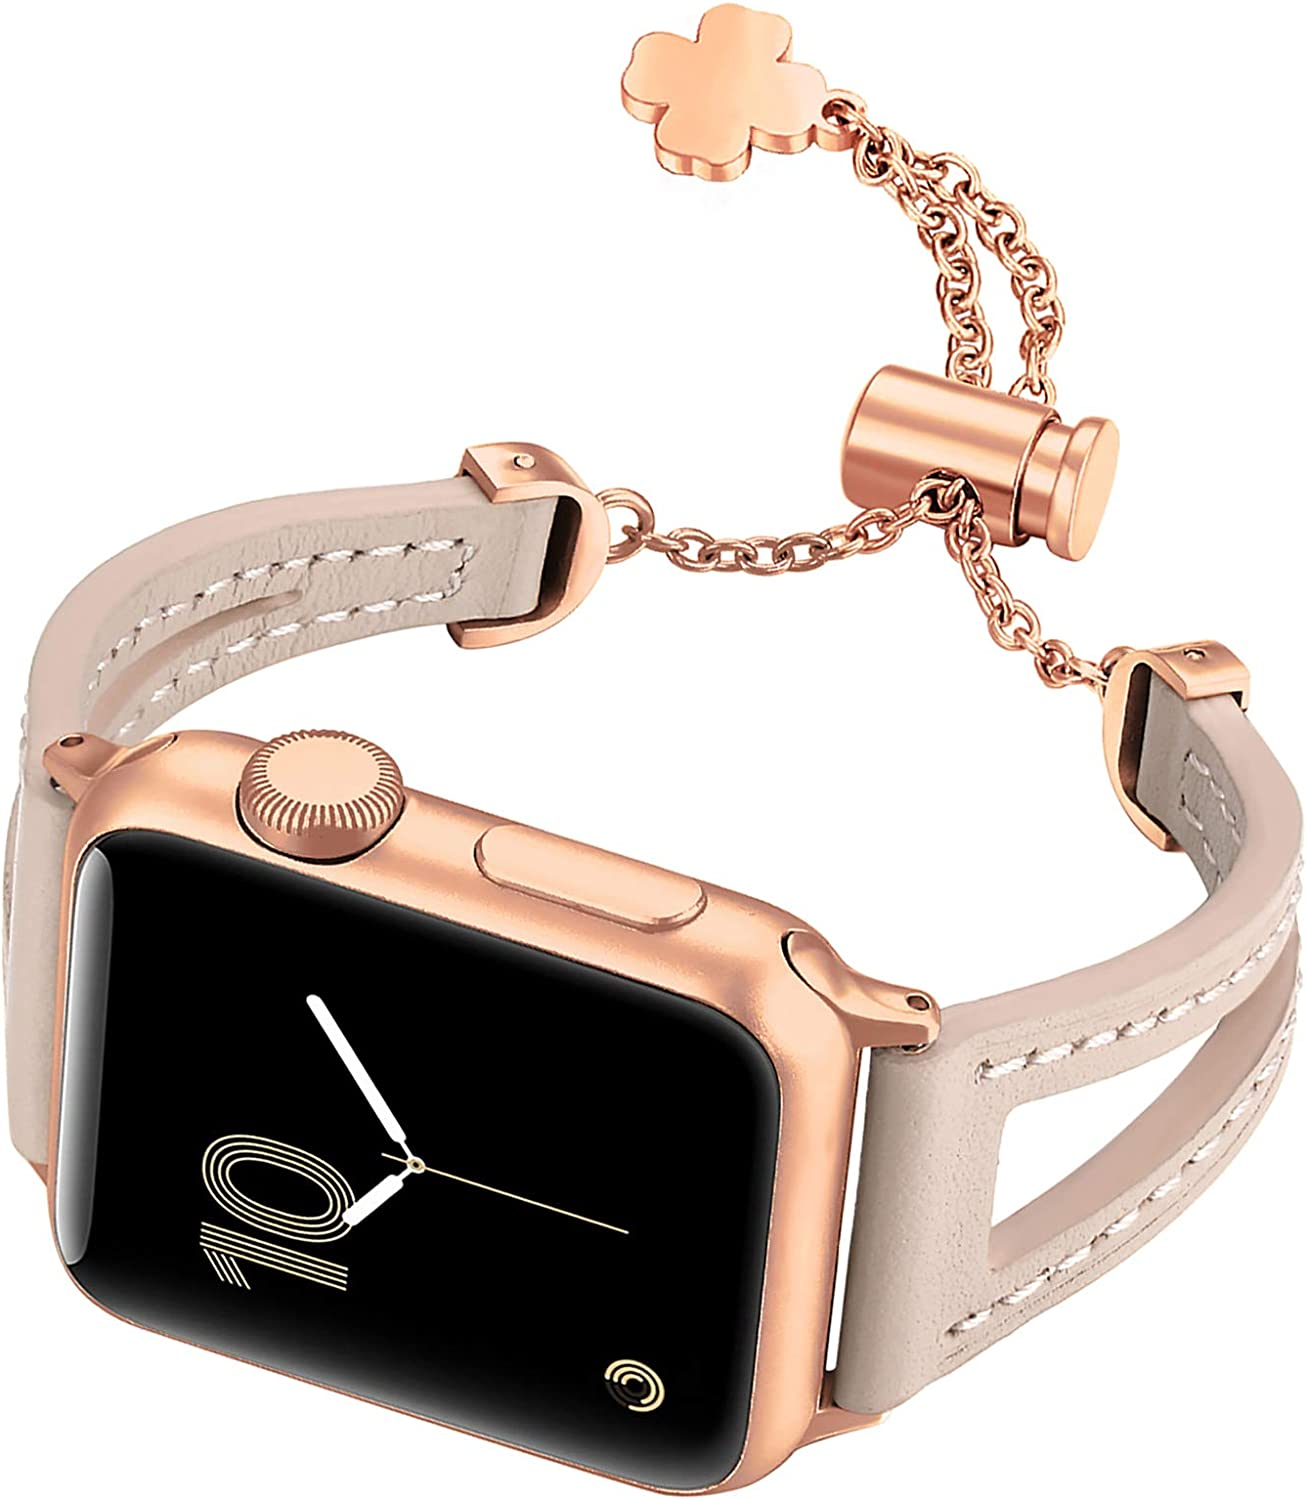 fastgo Leather Bracelet Compatible with Apple Watch Bands 38mm 40mm 42mm 44mm, Thin Cute Dressy Replacement Strap Women Girls for Iwatch Series SE & 6/5/4/3/2/1, Black, White, Pink, Grey